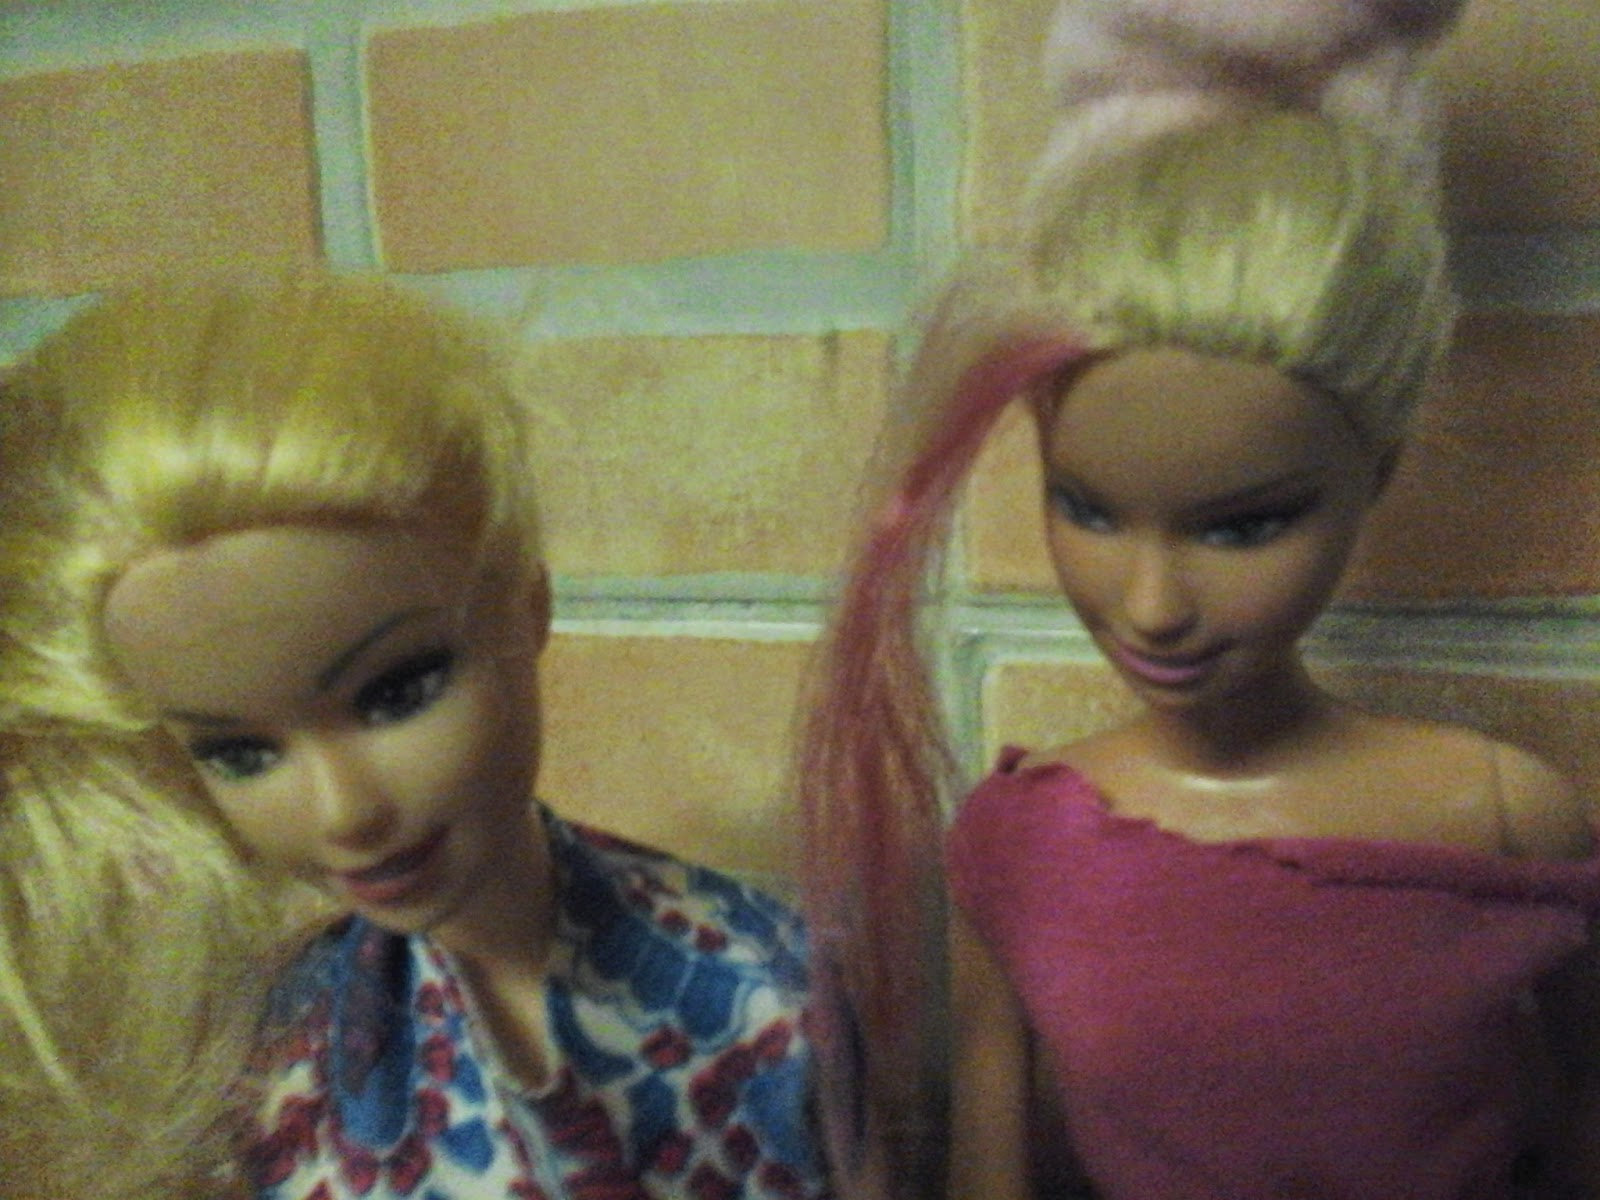 barbies de mechas